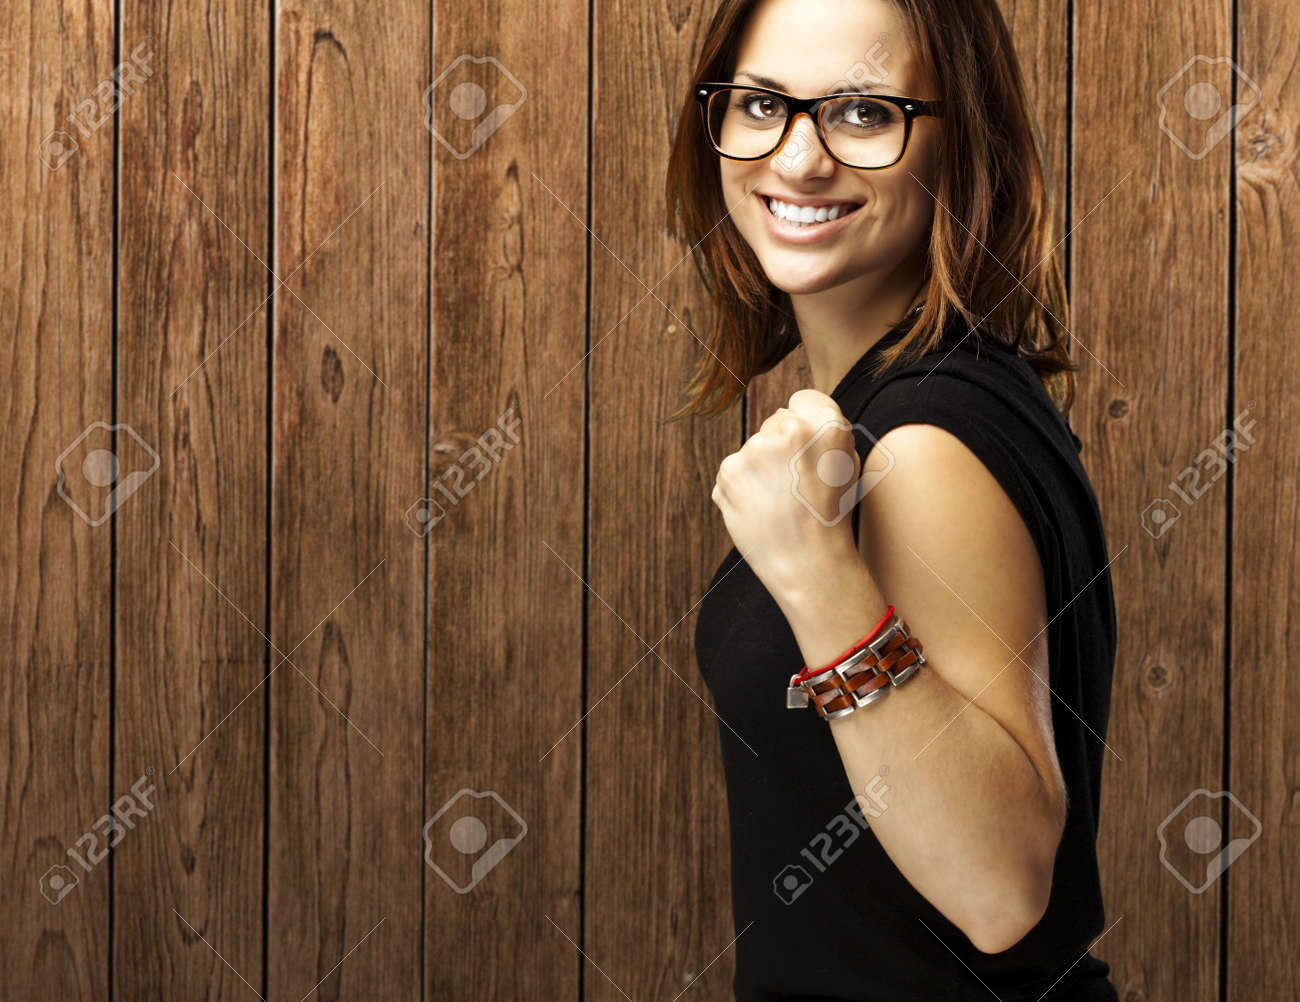 portrait of young woman win gesture against a wooden wall Stock Photo - 13156194